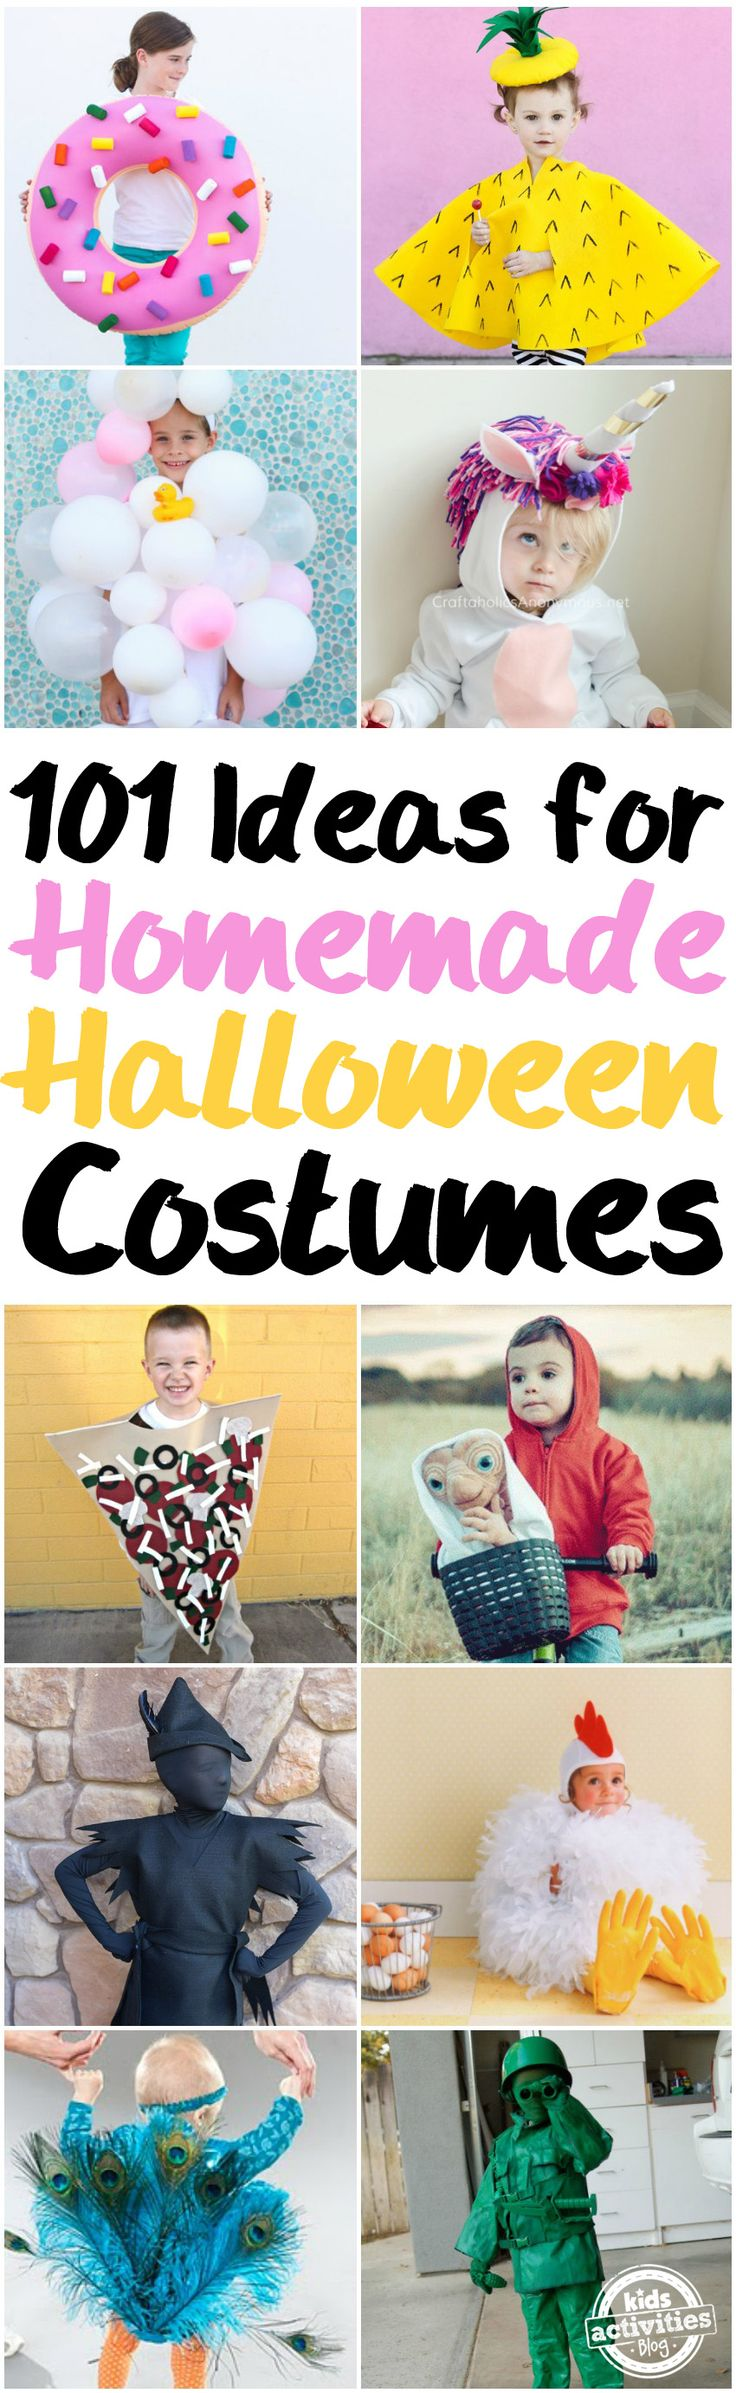 Homemade Halloween Costumes via @hollyhomer